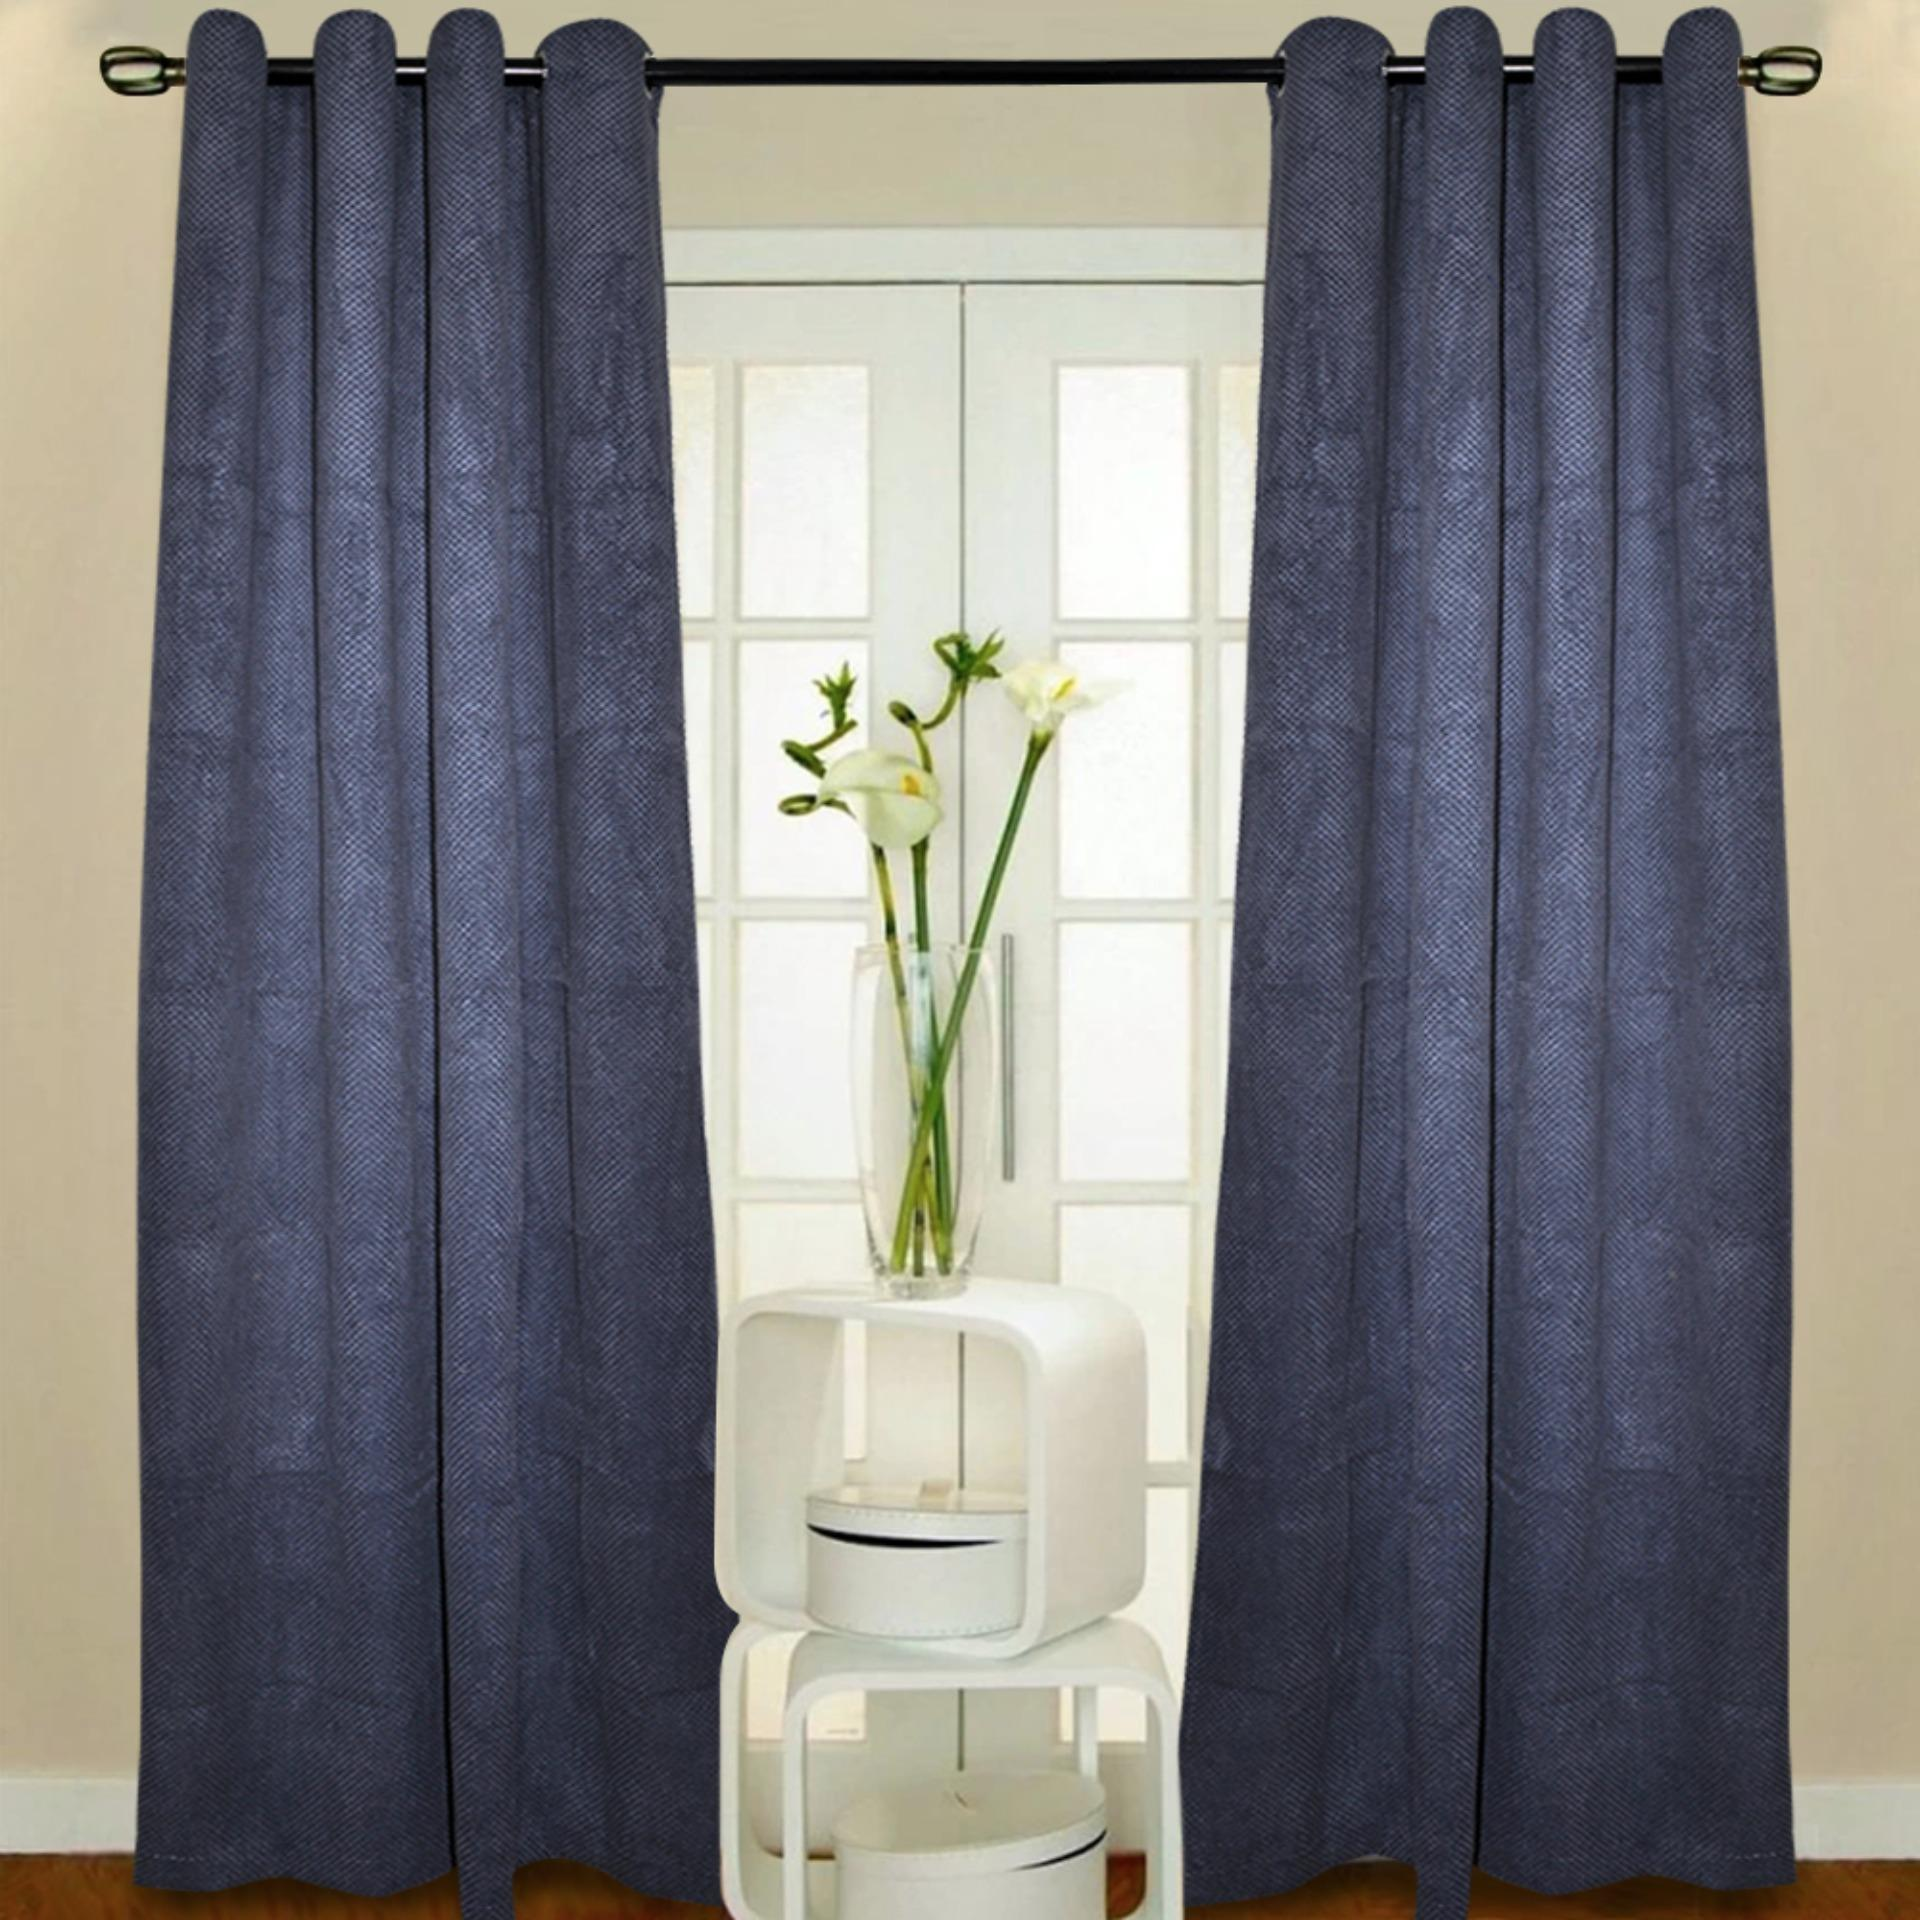 curtains for vertical blind track do curtains and vertical blinds go together curtain 8524